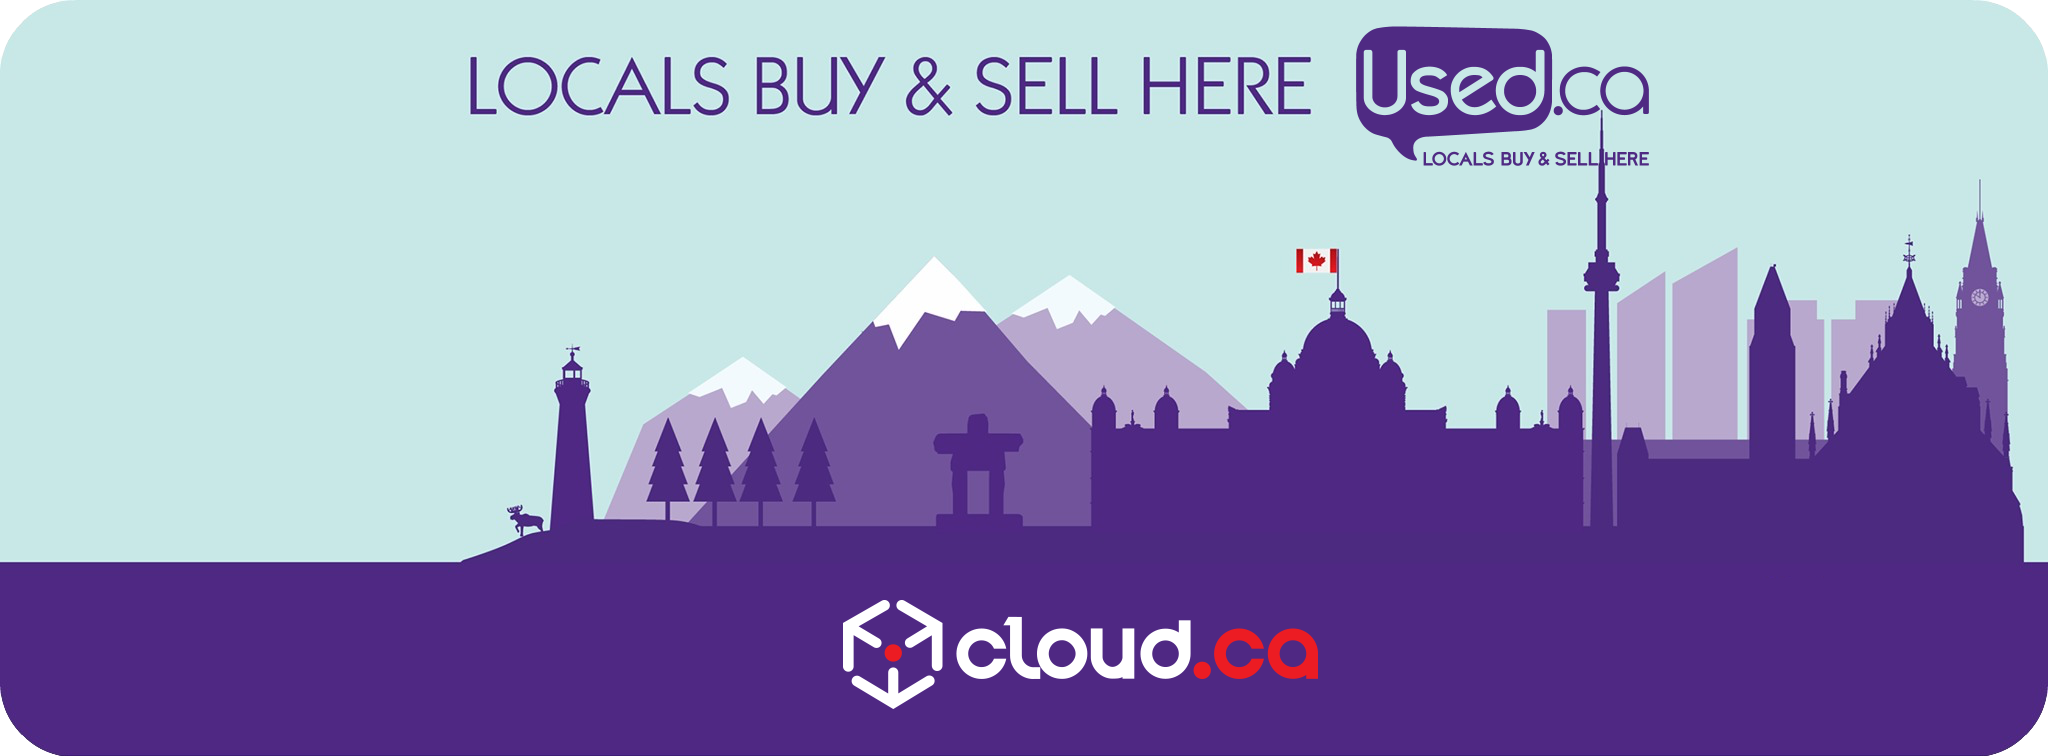 Used.ca cloud.ca skyline logos 2.png